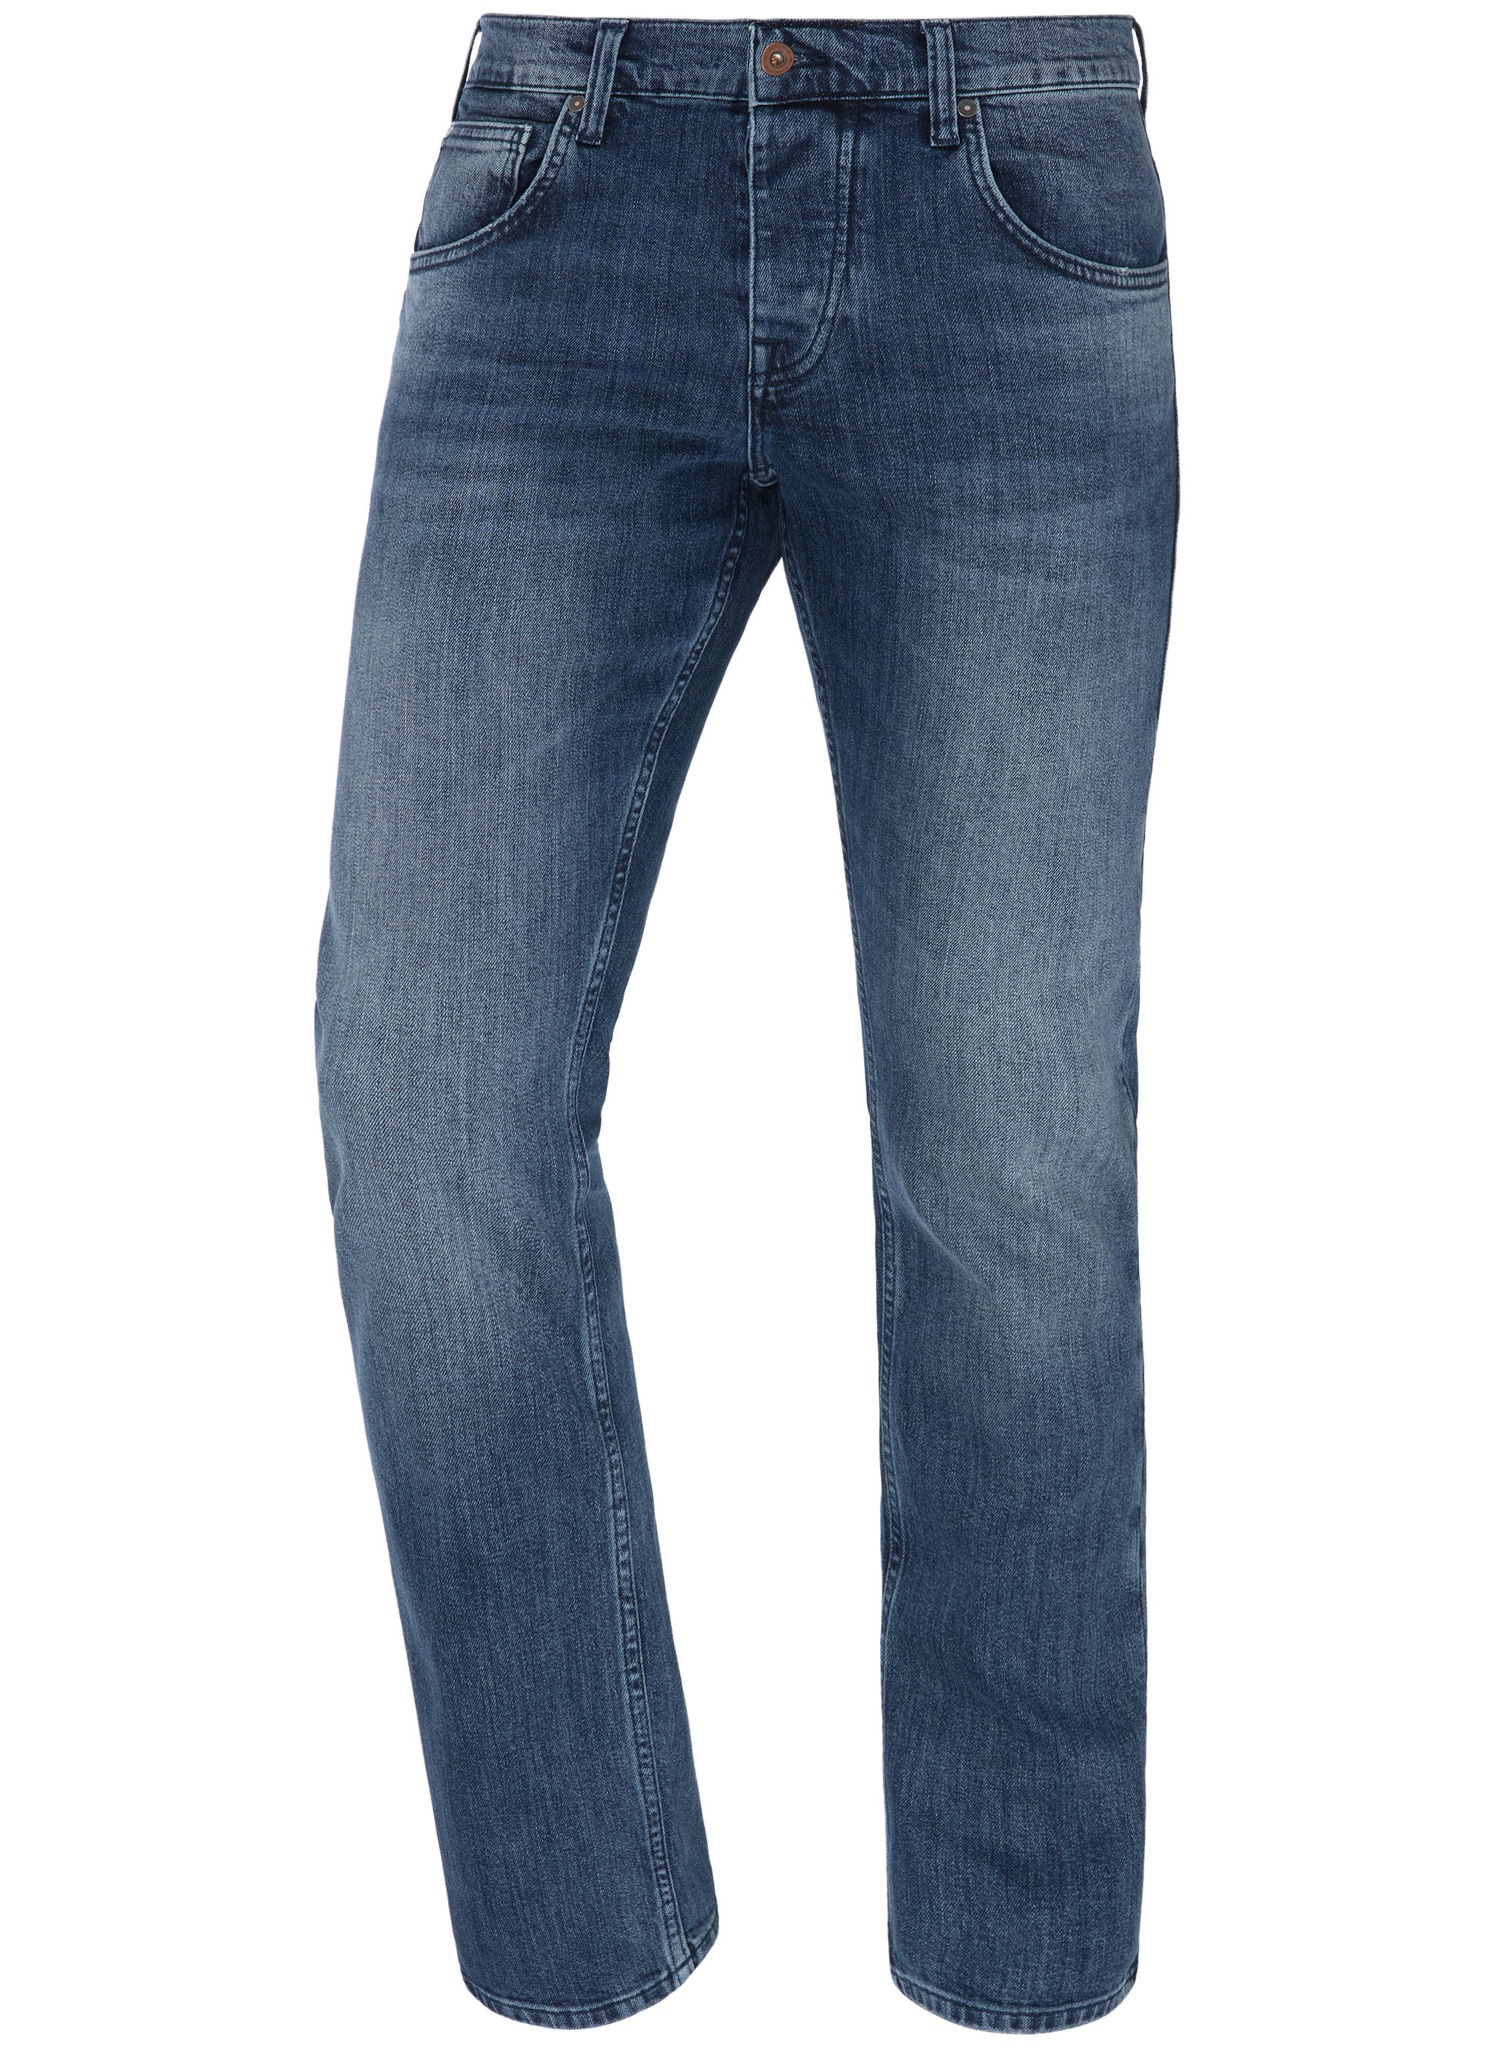 Джинсы Mustang Chicago Tapered 1006935-5000-883